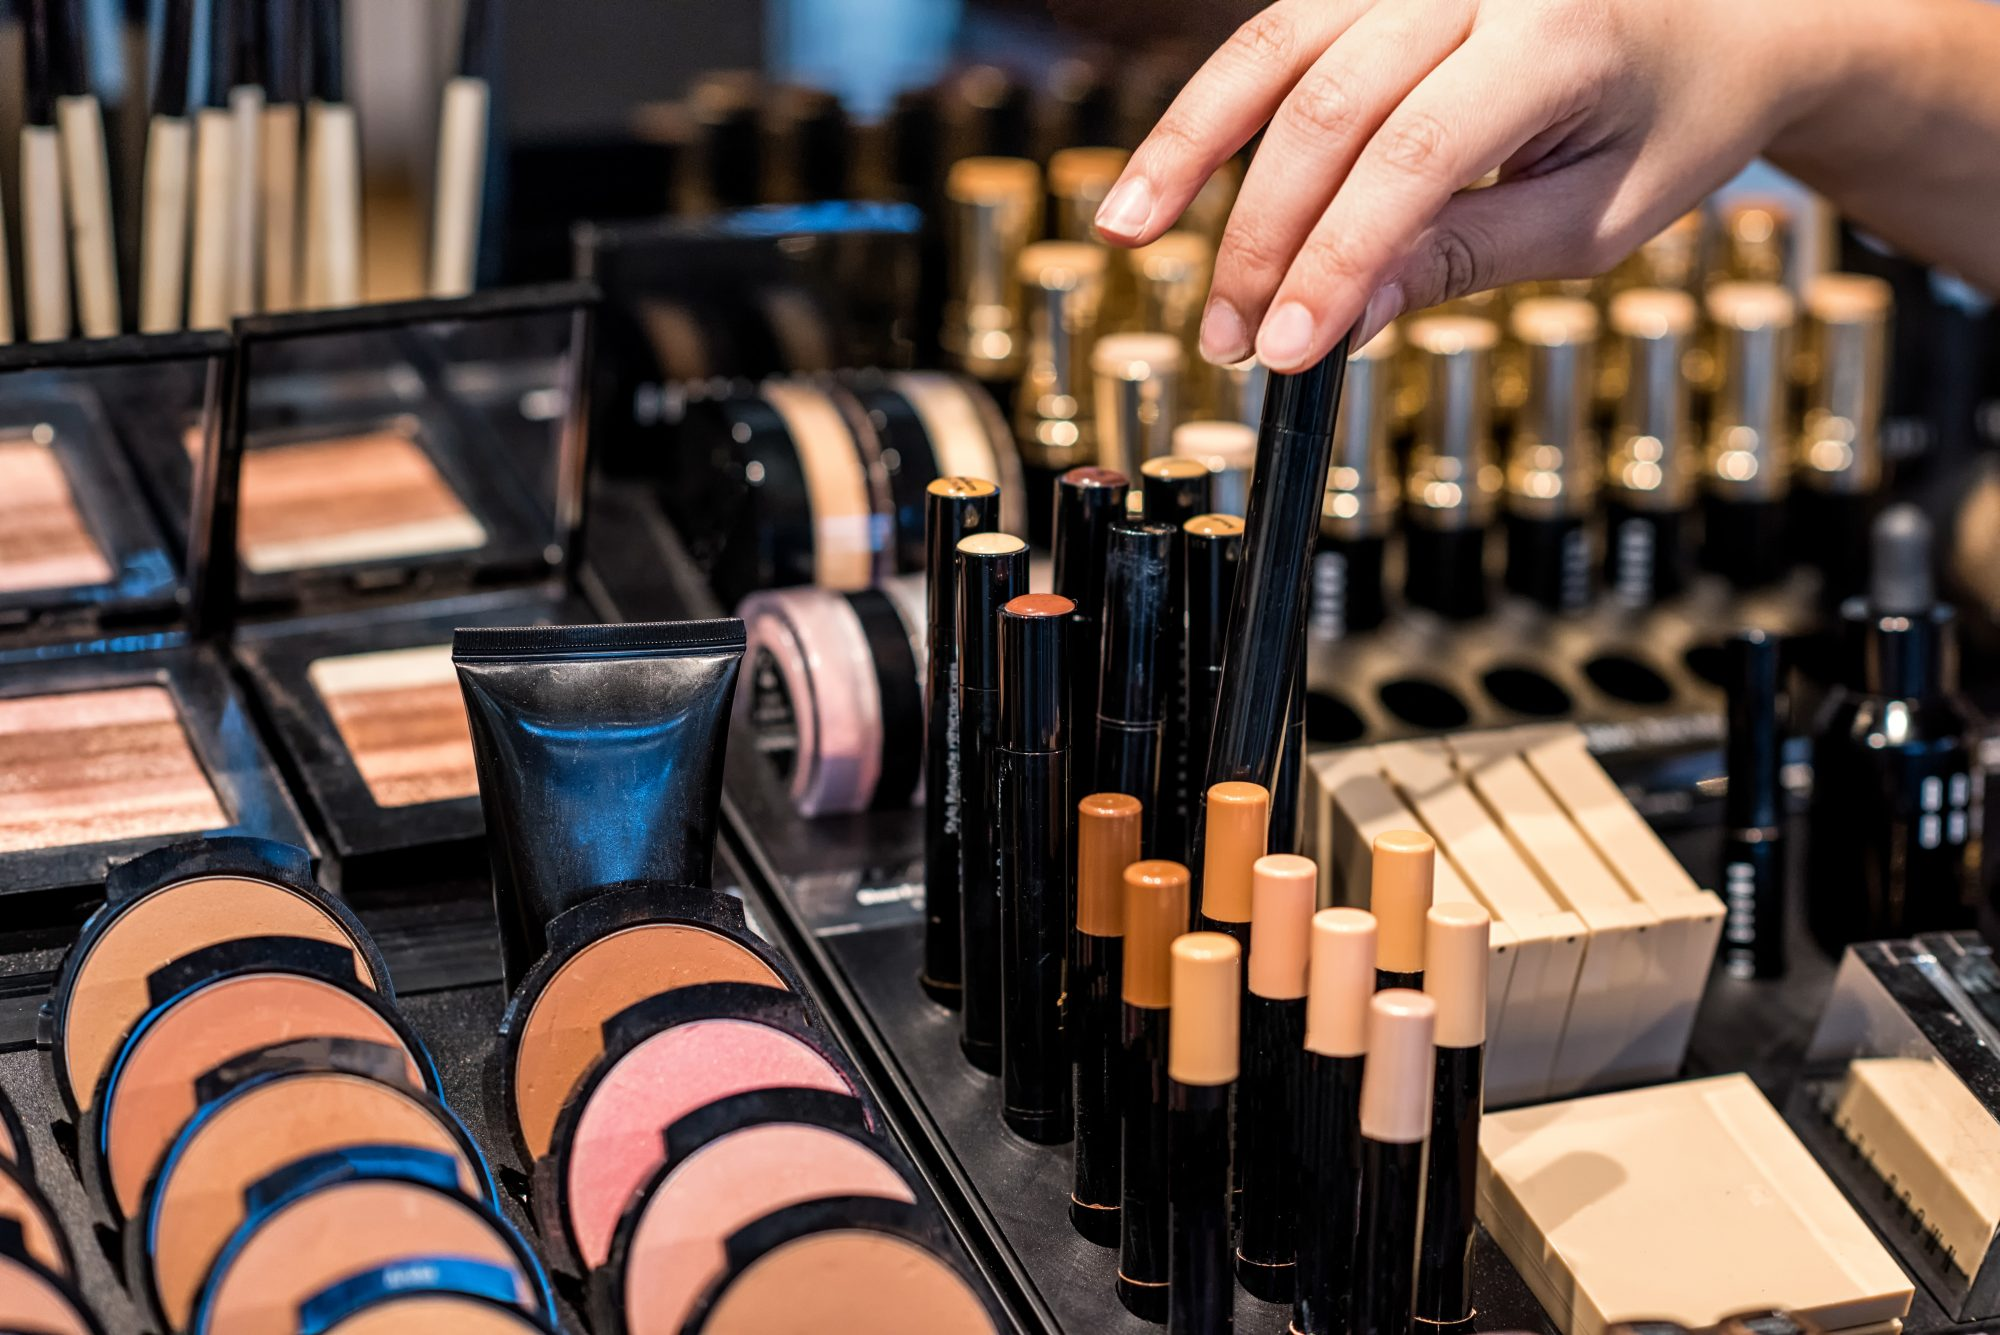 These 3 Tips from Sephora Collection's Makeup Artist Are What Your Routine Is Missing